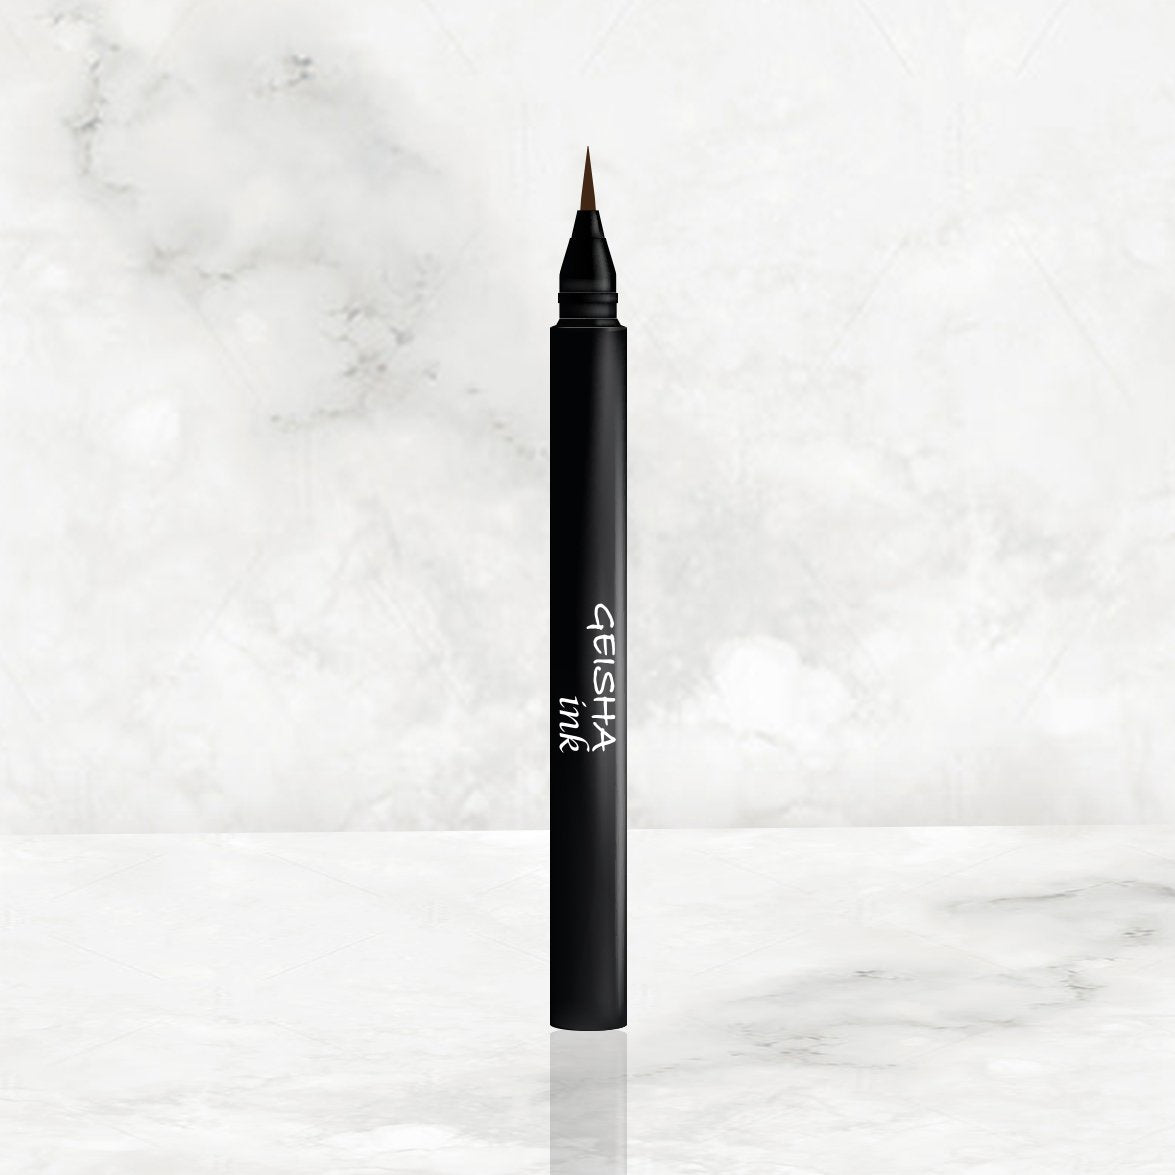 amaterasu | chestnut brow pen[product_type ]amaterasu - Kiss and Makeup